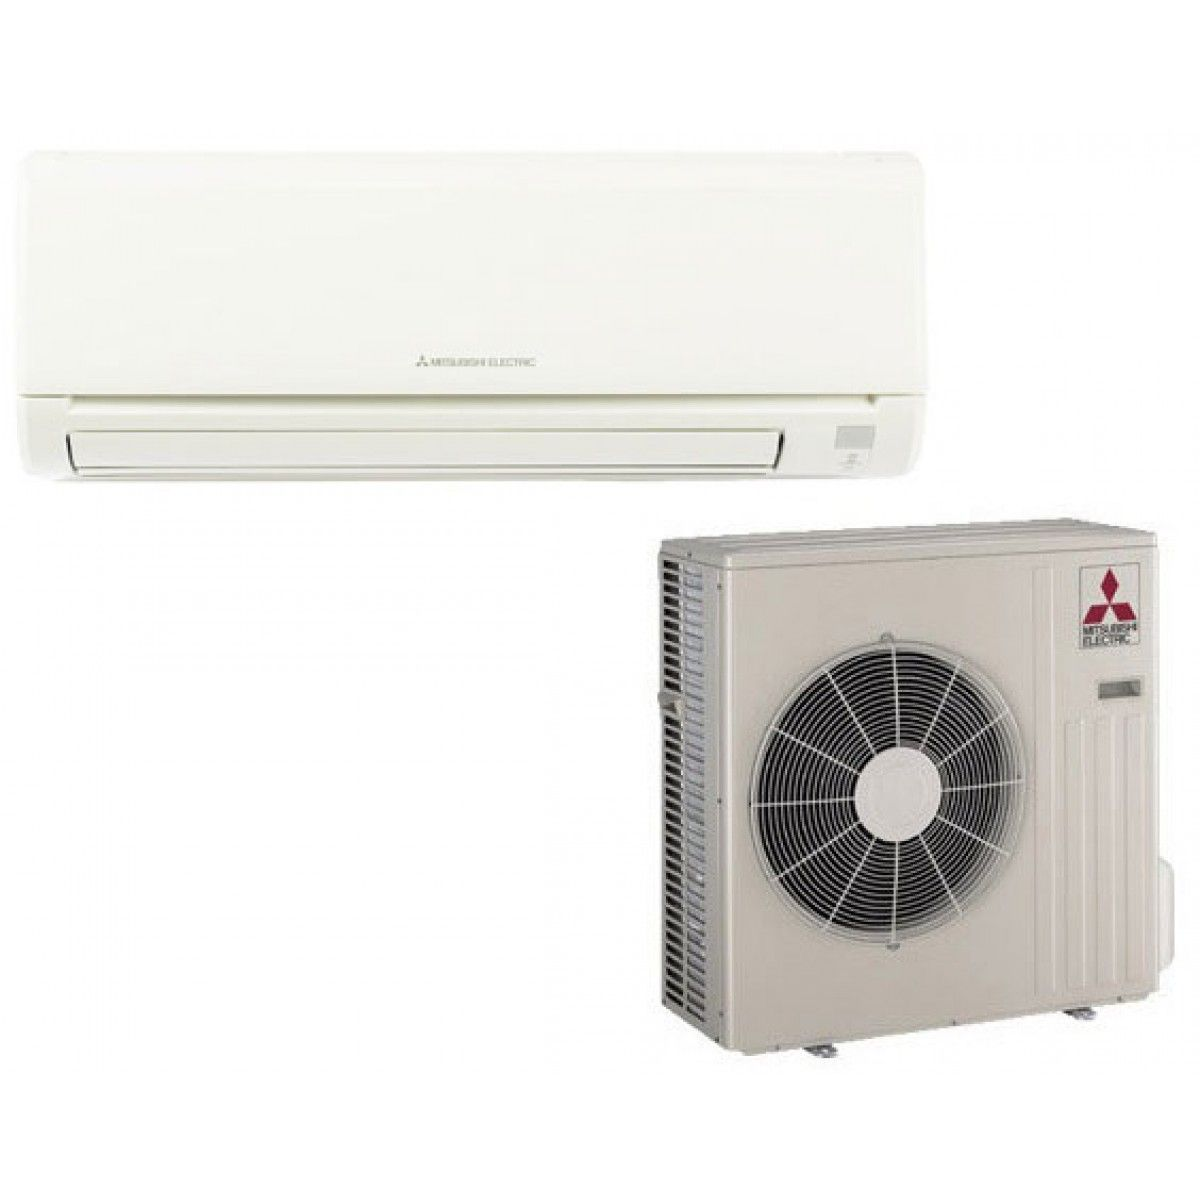 Air Conditioner moreover Mitsubishi Wall Mounted Air Conditioner  #6B3741